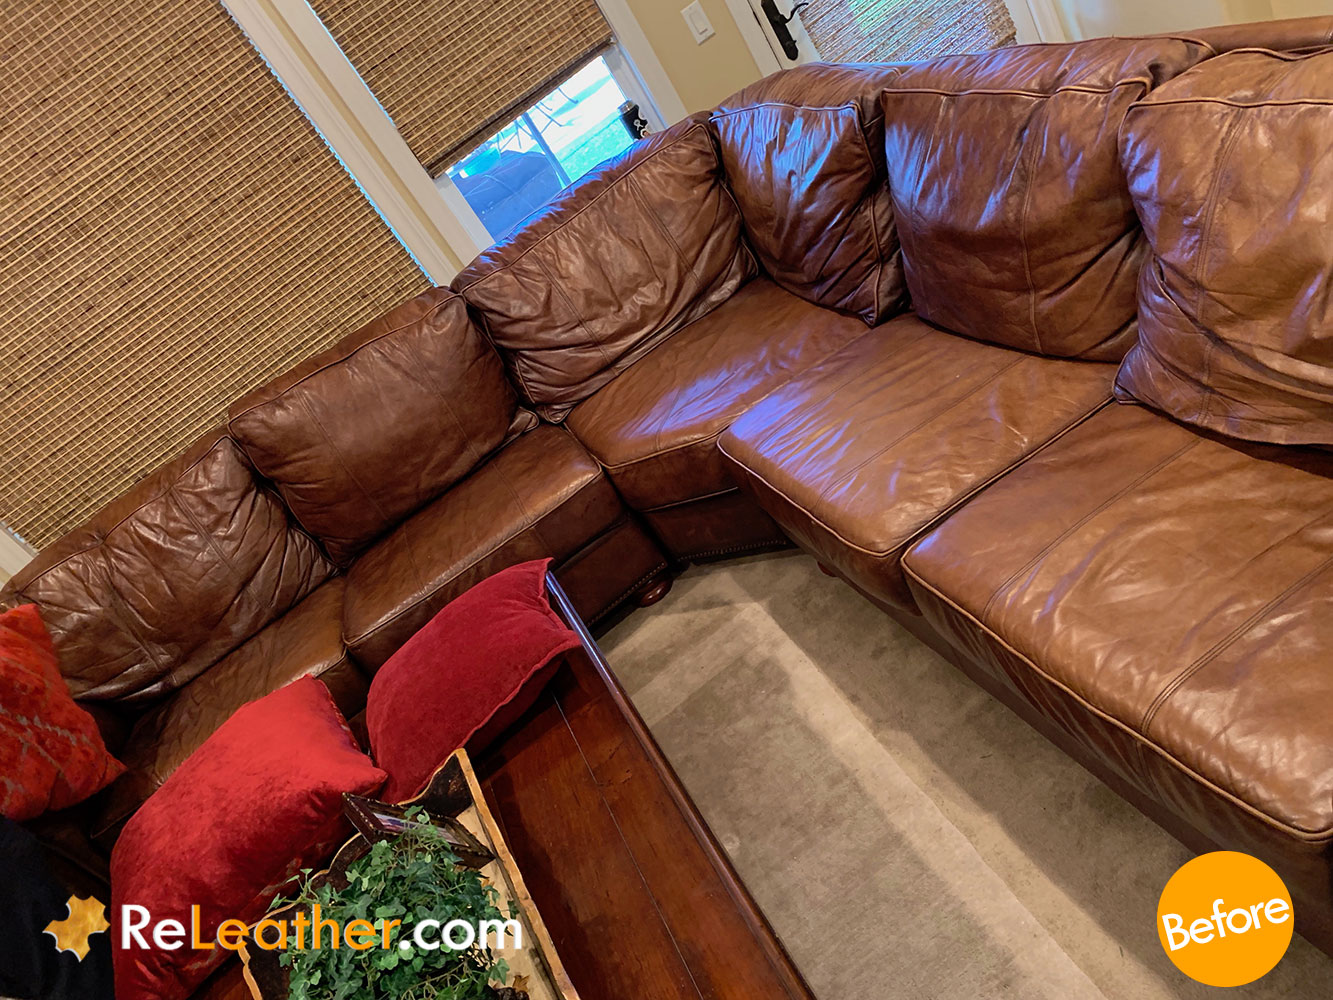 Leather Custom Recoloring Dyeing for Thomasville Sofa - Before